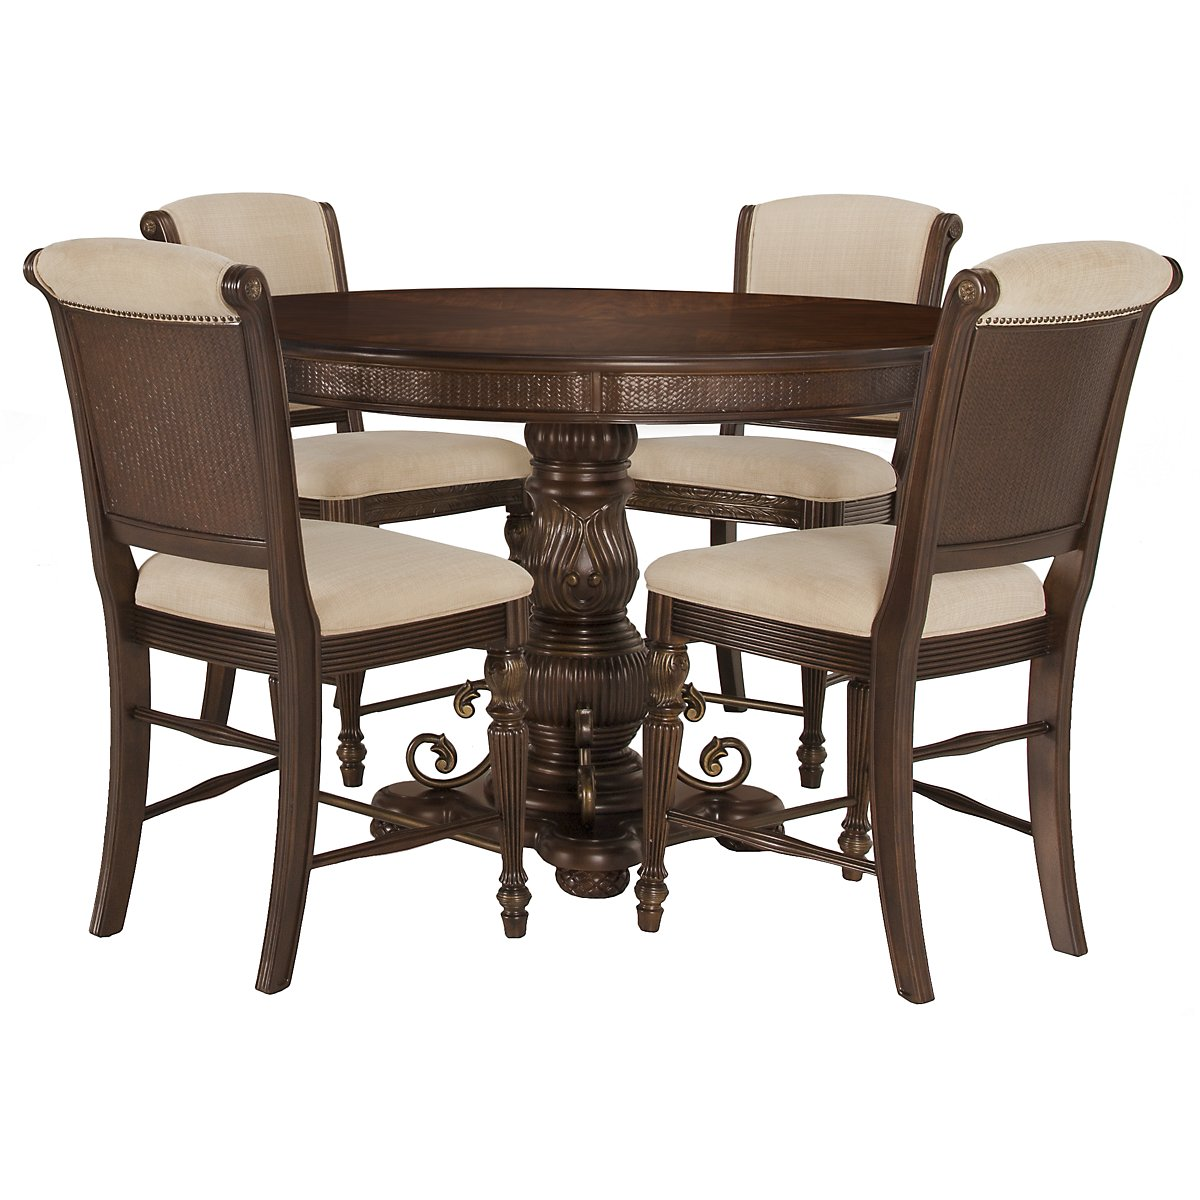 Bayberry Dark Tone Round Table 4 Chairs: City Furniture: Tradewinds Dark Tone Round High Table & 4